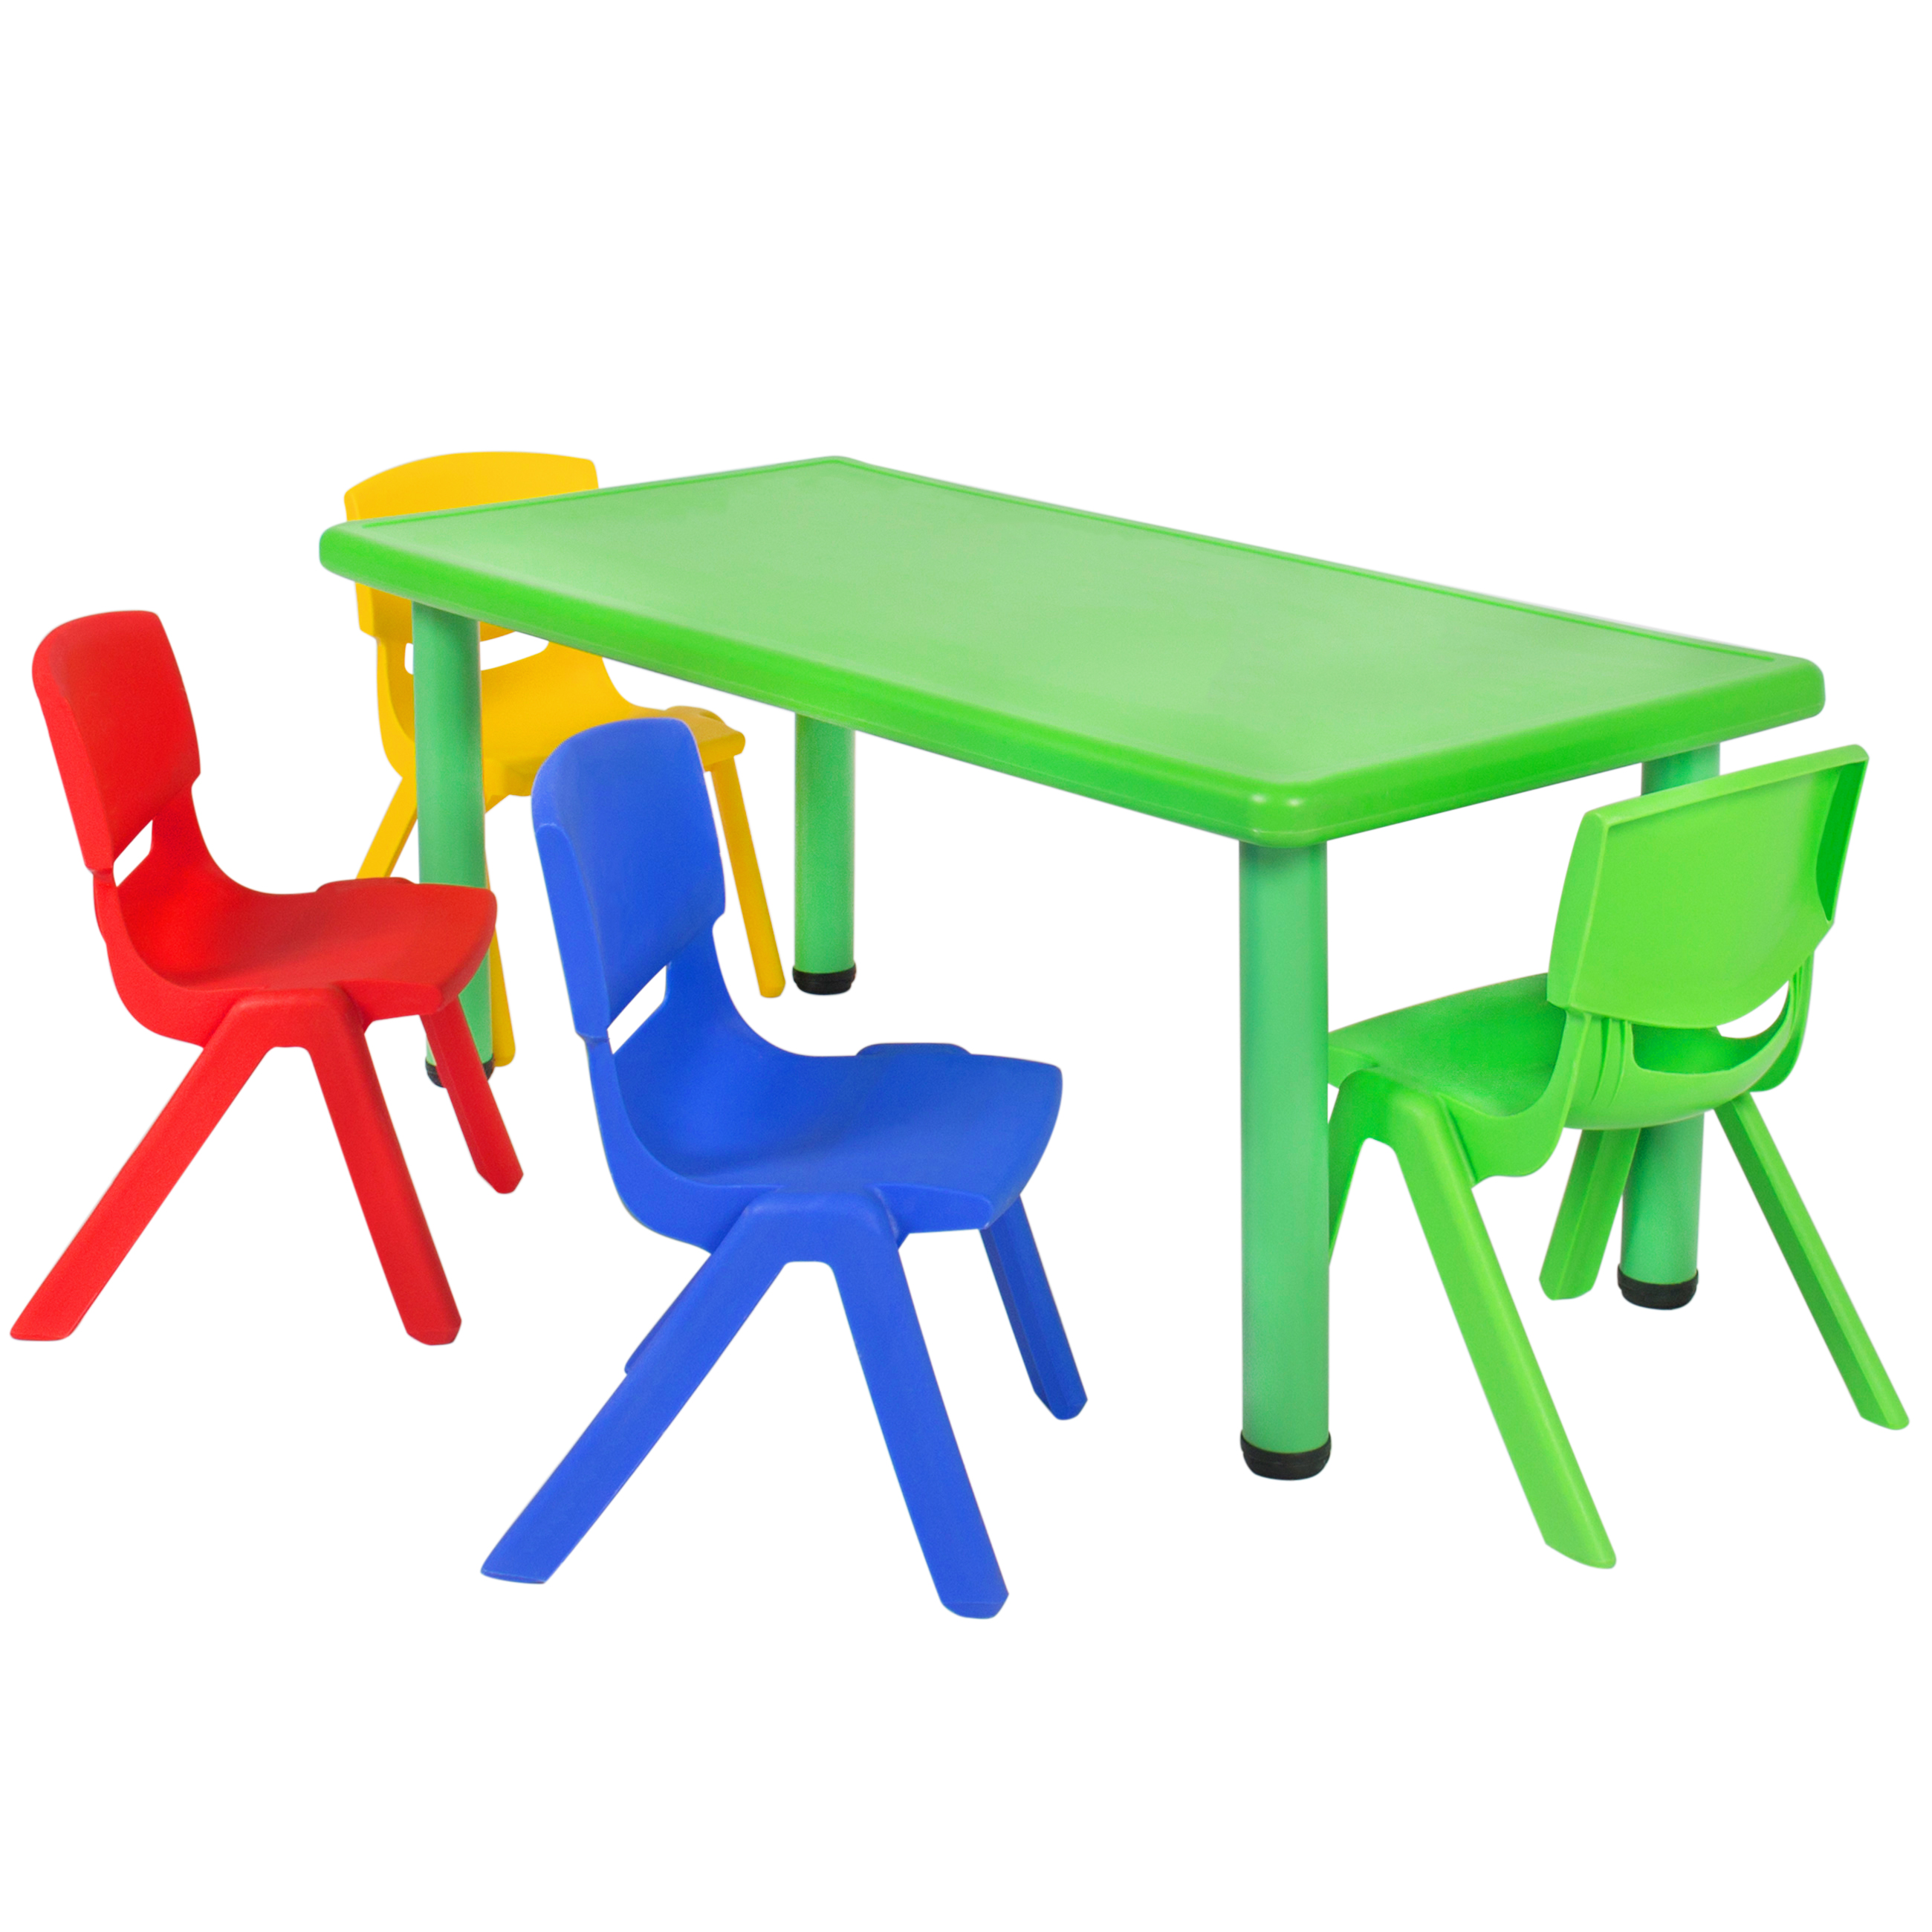 Best Choice Products Kids Plastic Play Room Furniture Set w  Table, 4 Chairs for Home, School, Fun Multicolor by Best Choice Products